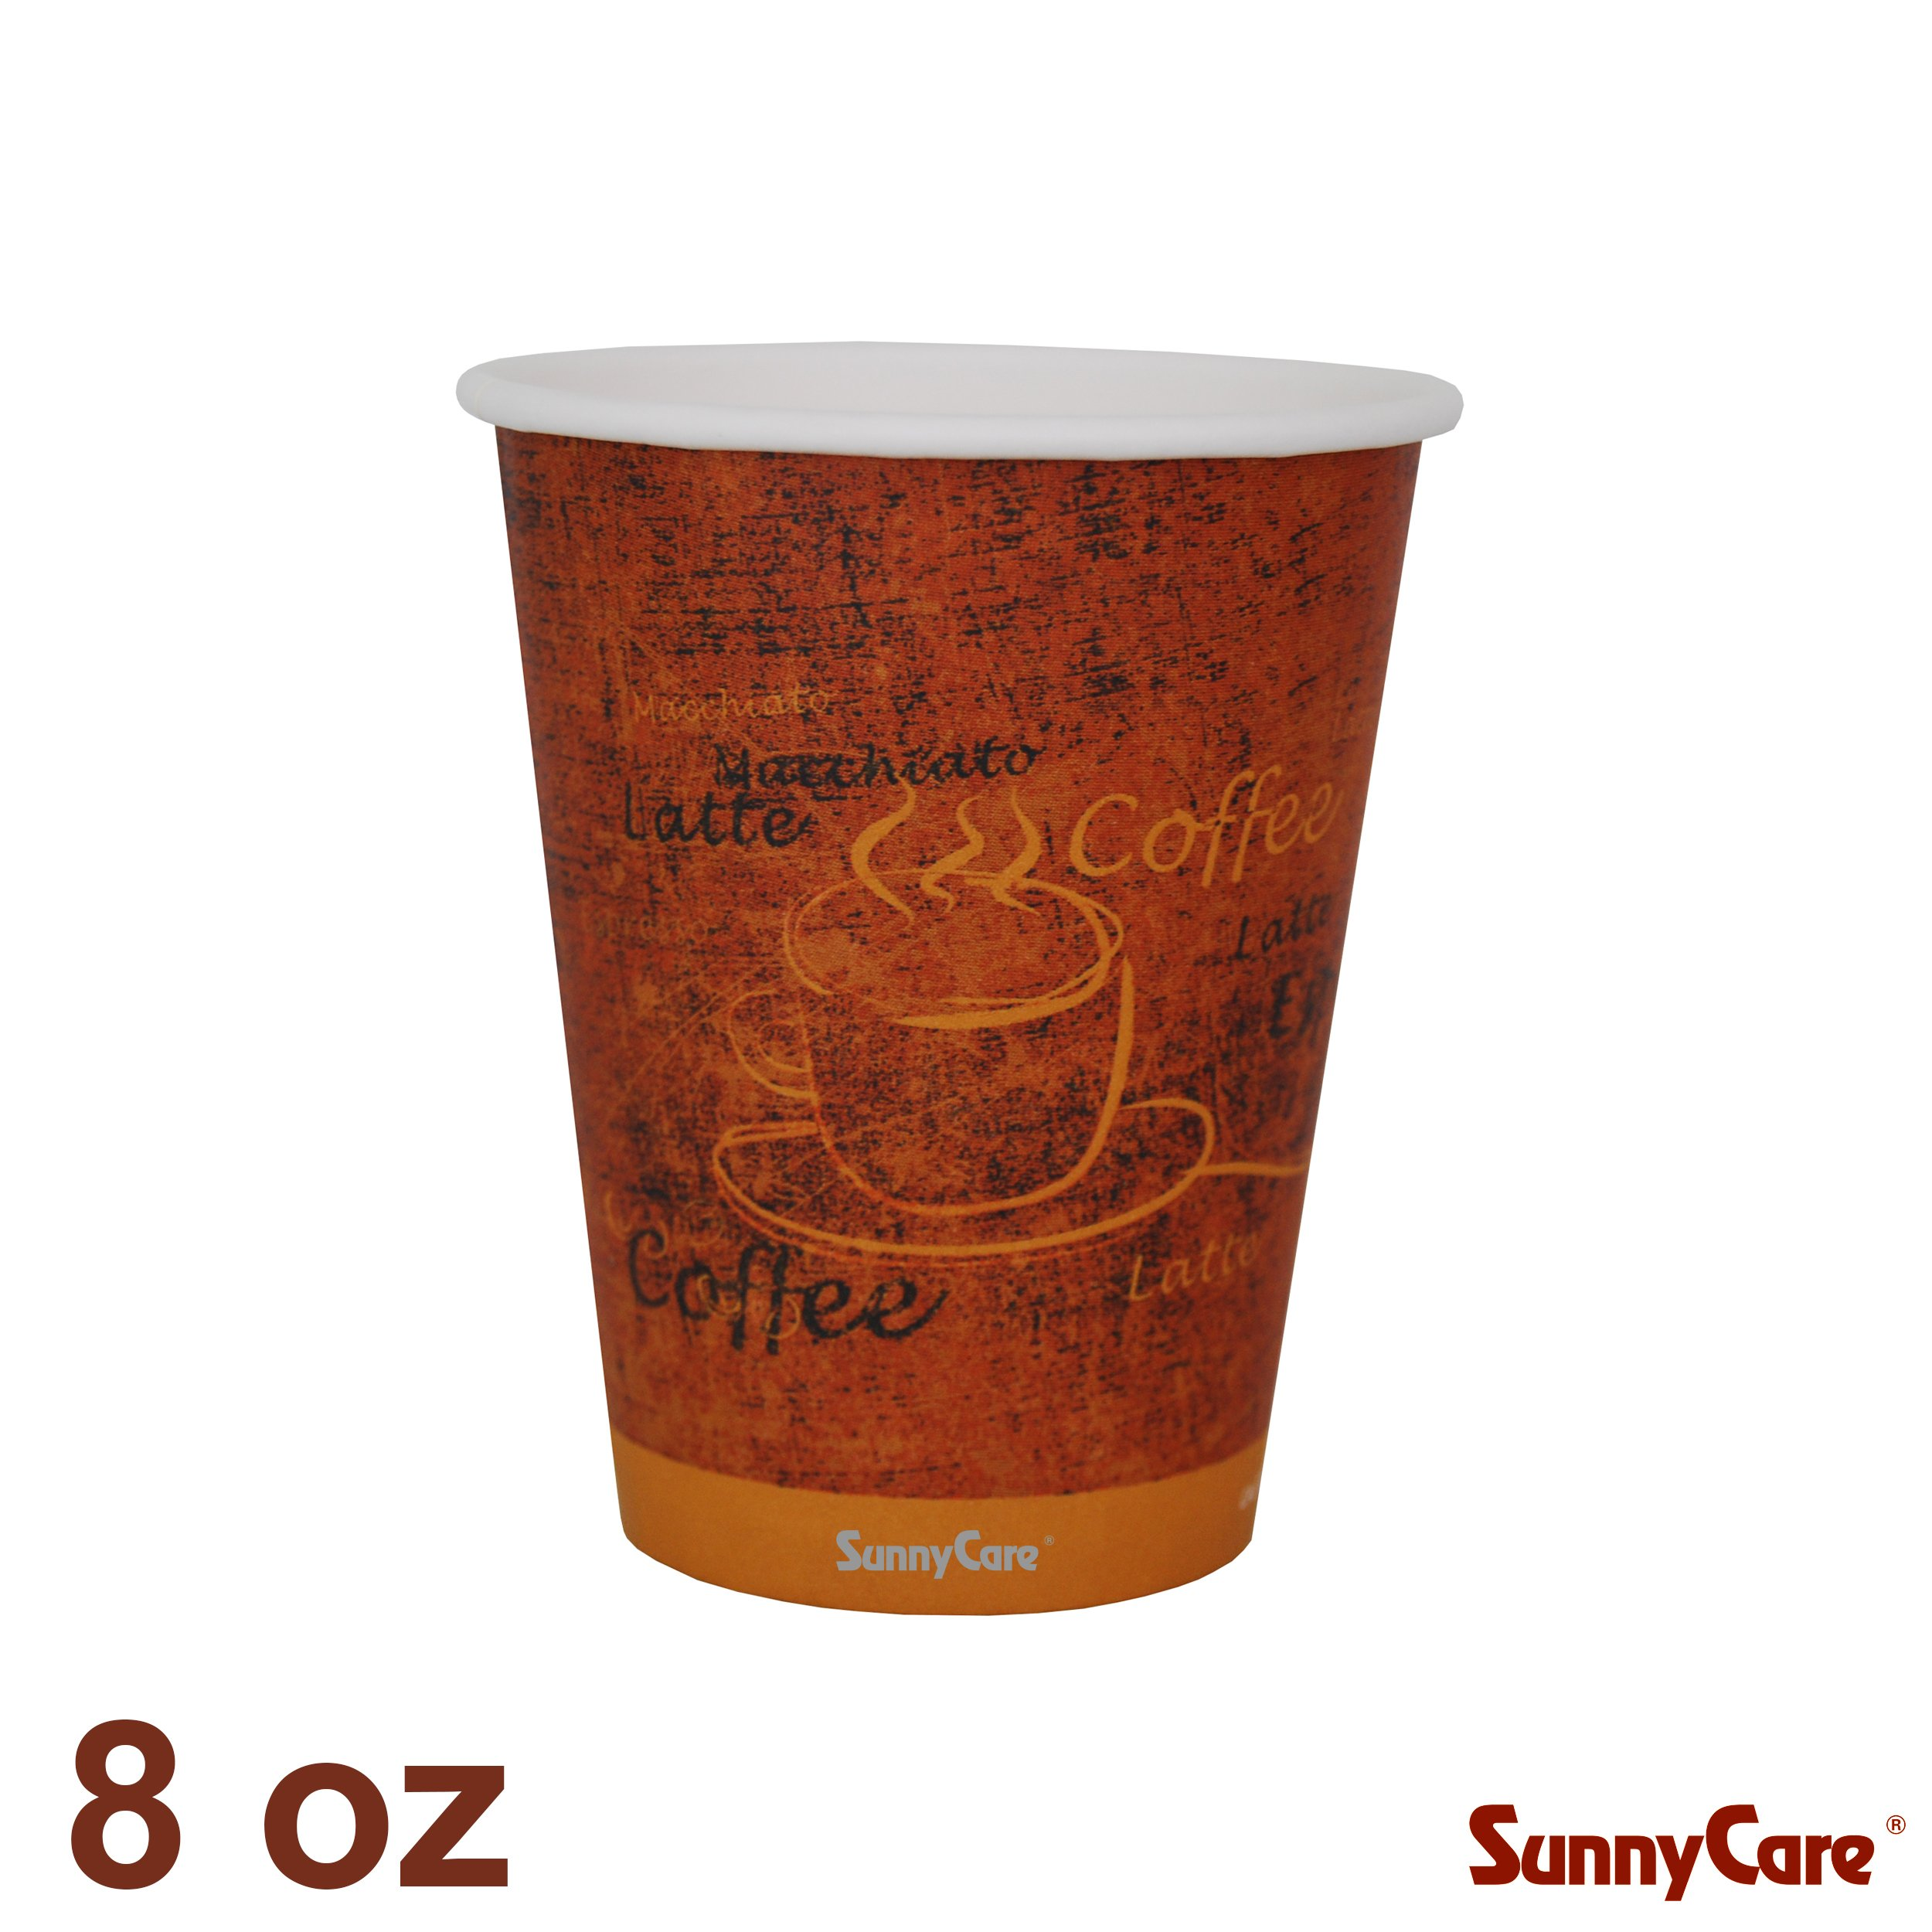 Disposable 8-oz Single Hot Coffee Paper Cups (Case of 1000) by SunnyCare